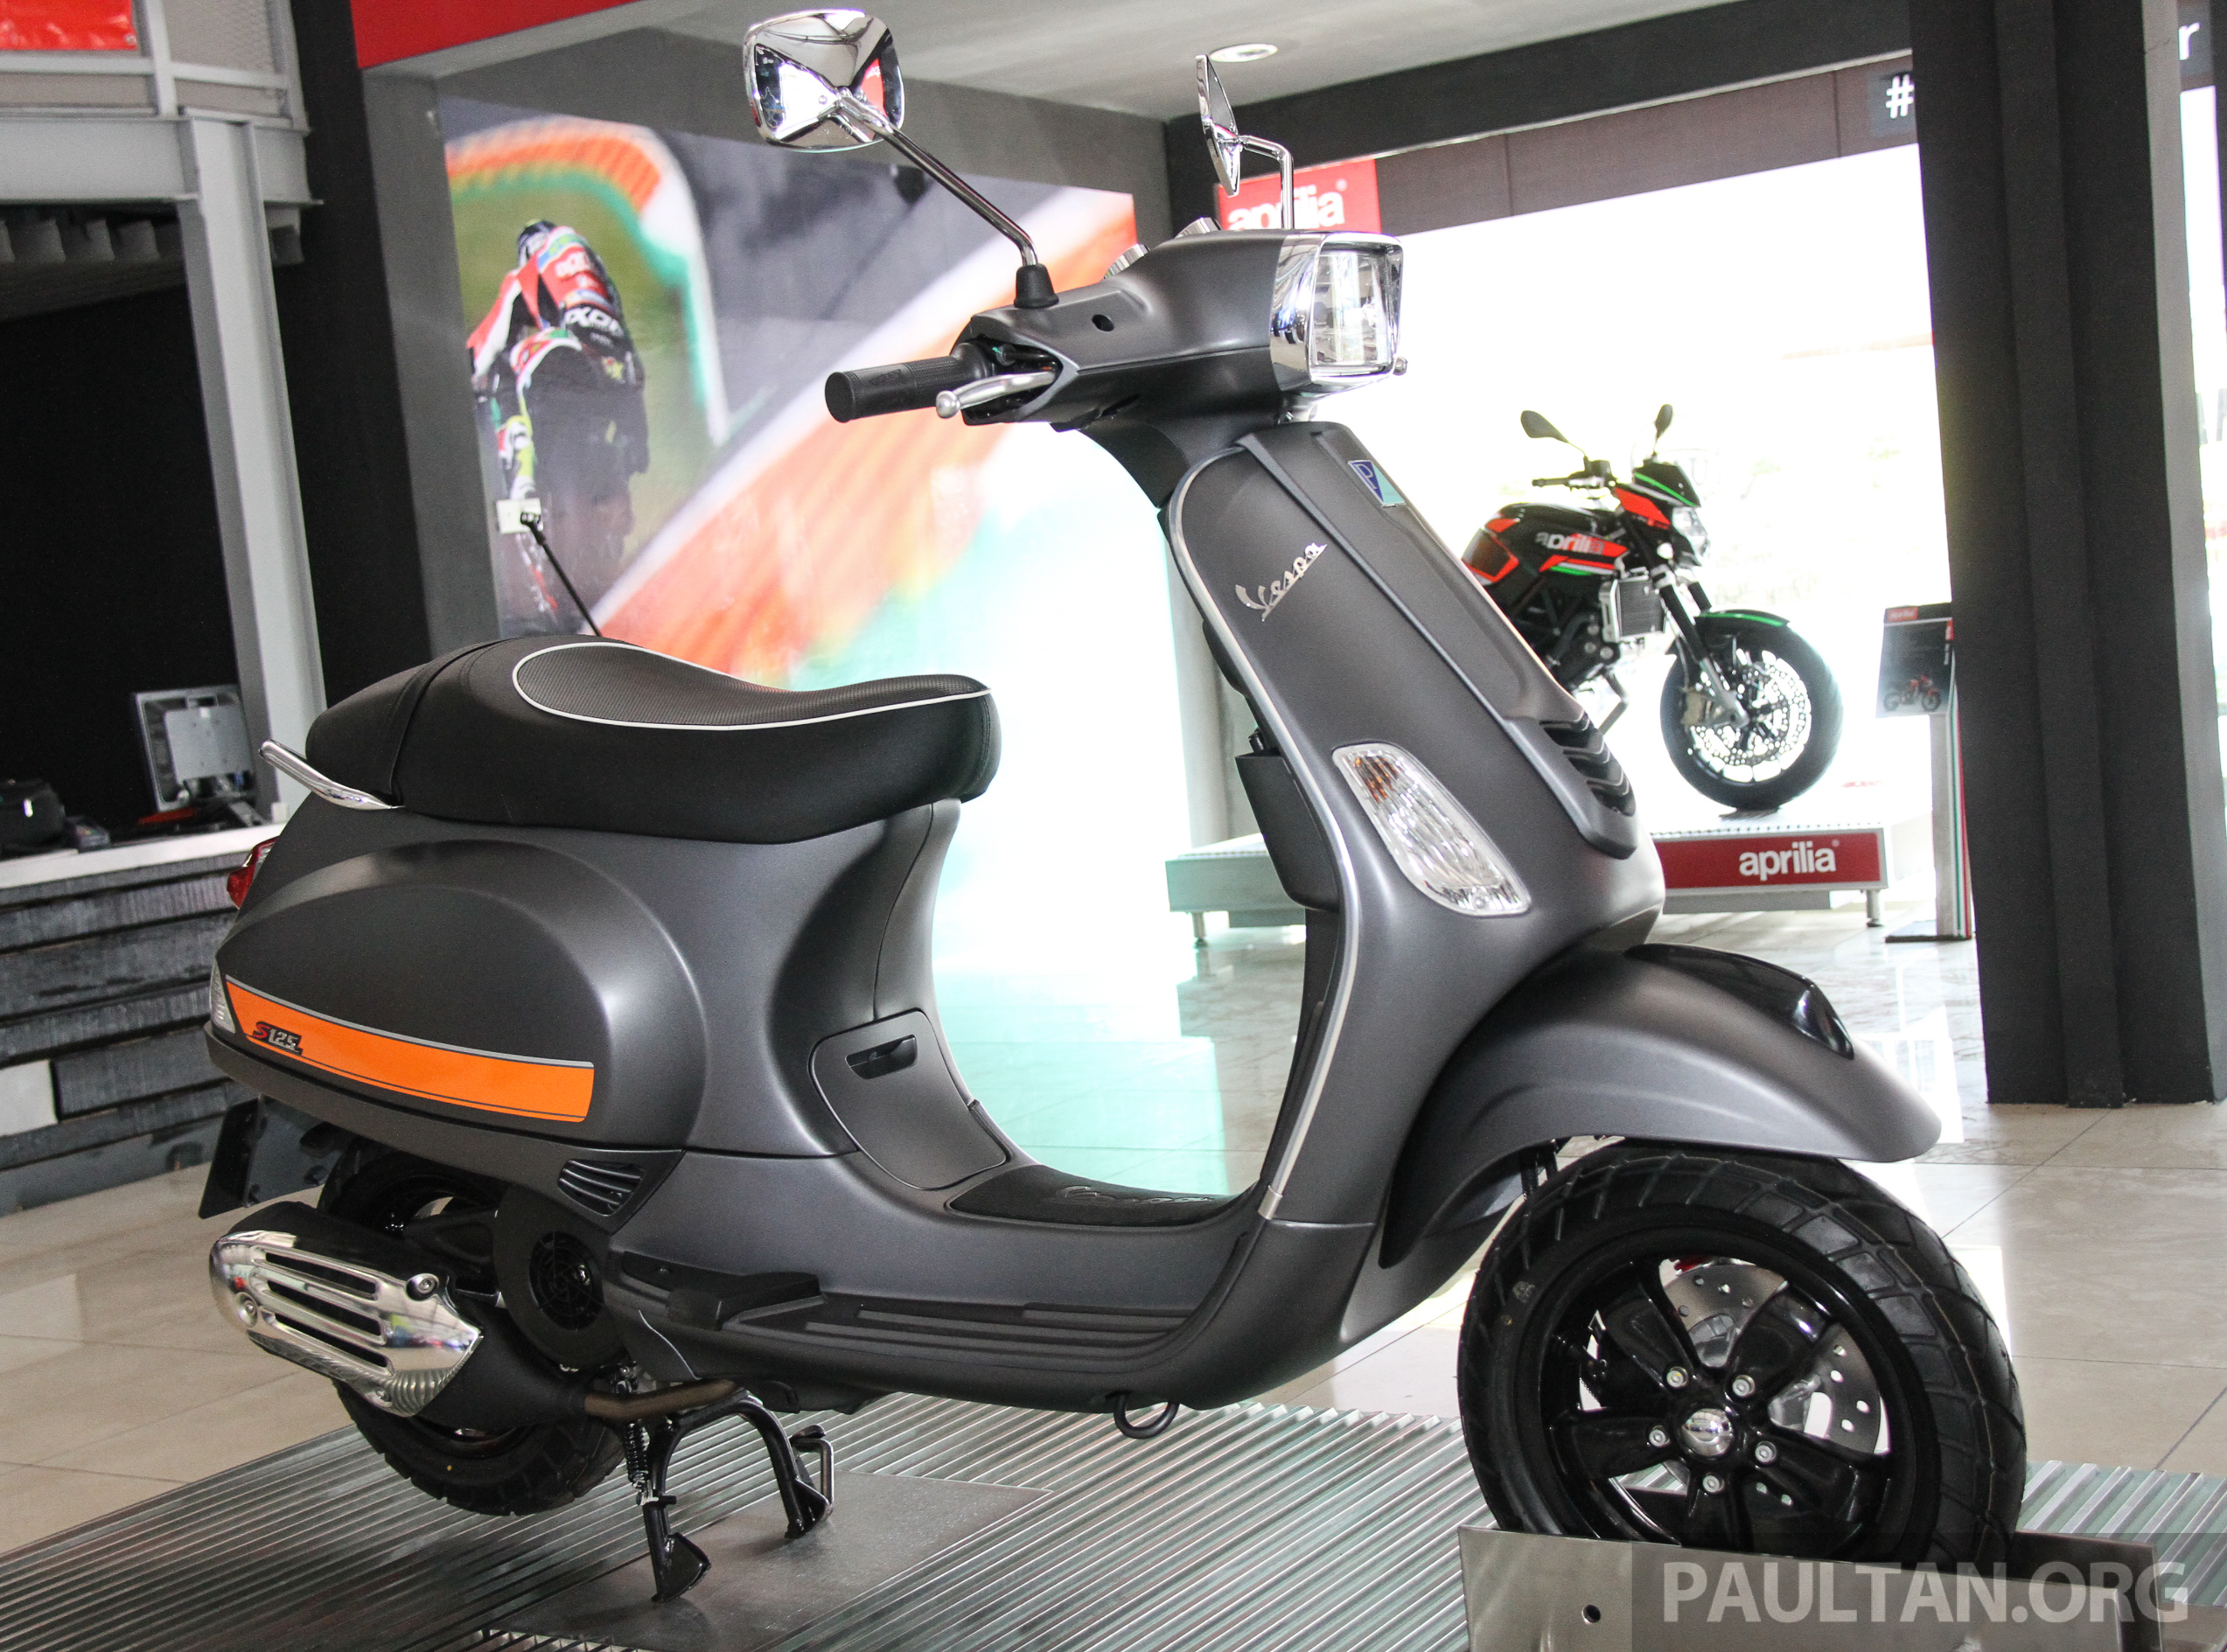 2017 vespa s 125 i get and piaggio medley s 150 abs launched rm12 603 and rm18 327. Black Bedroom Furniture Sets. Home Design Ideas